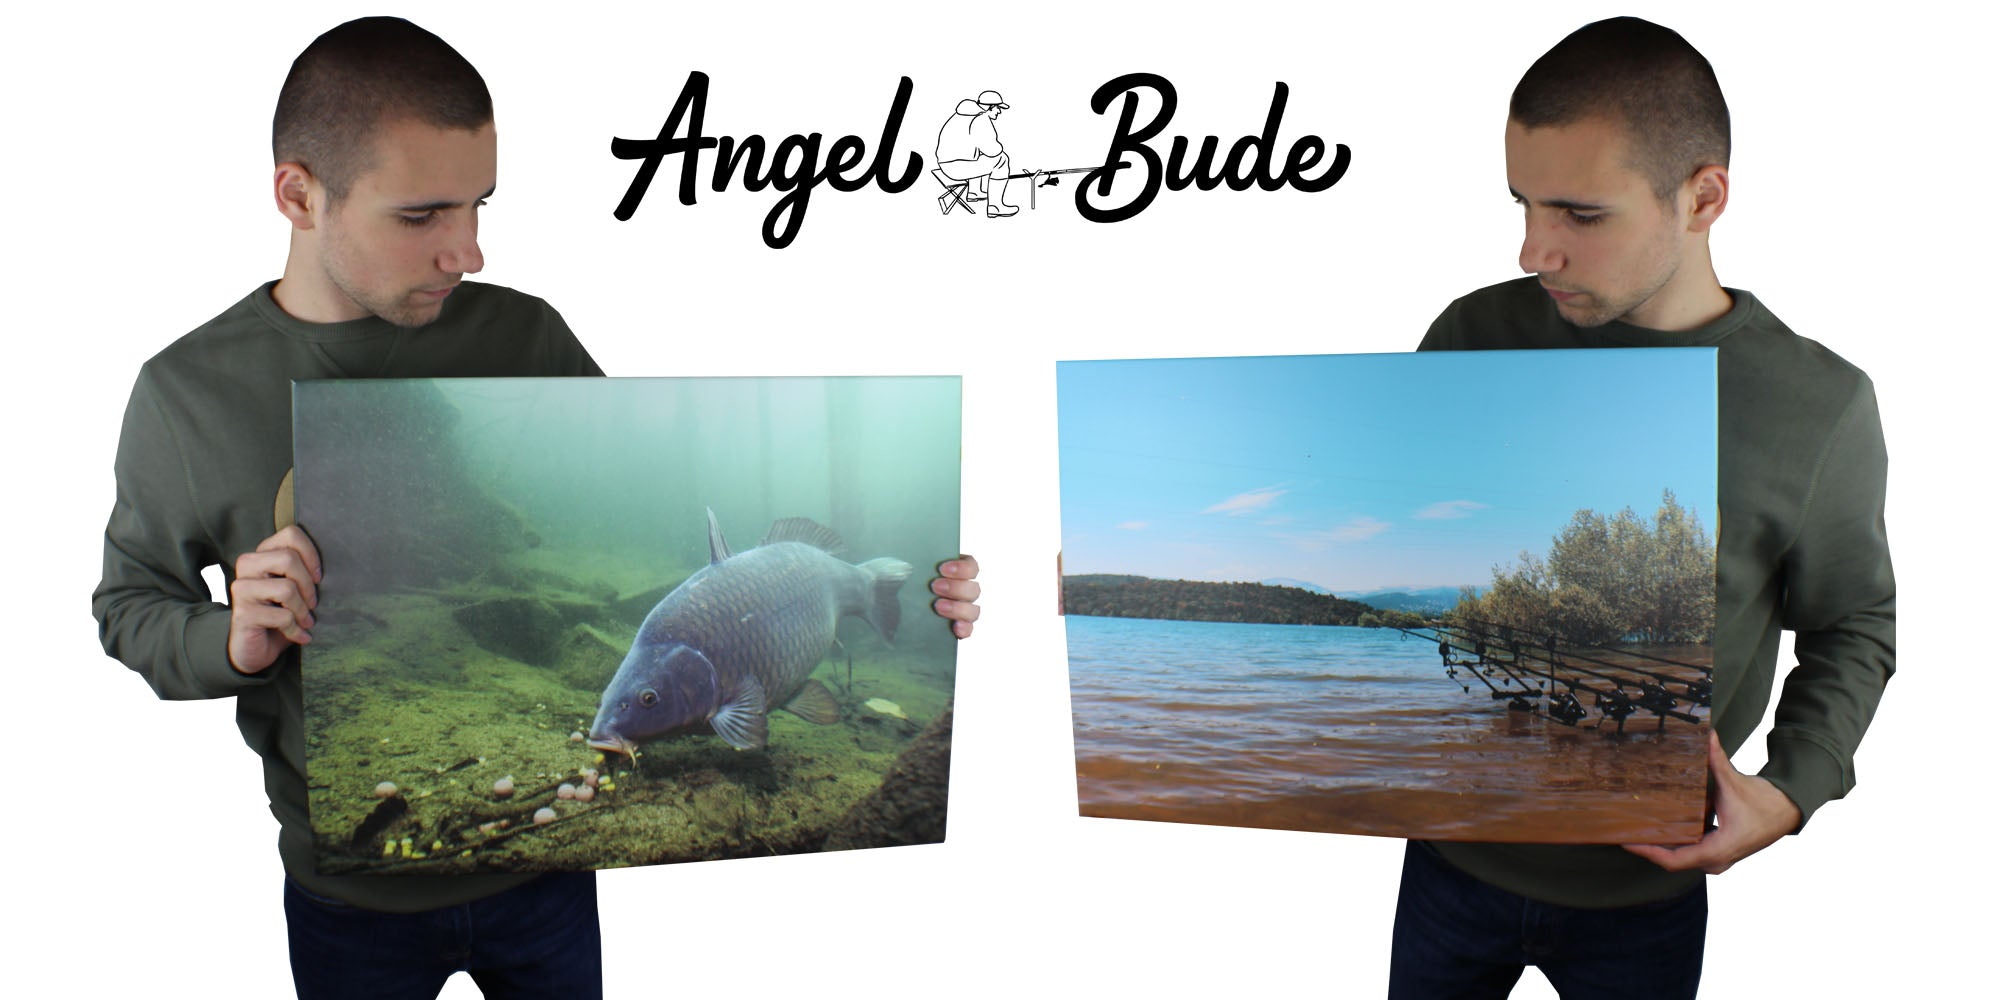 Angel Bude